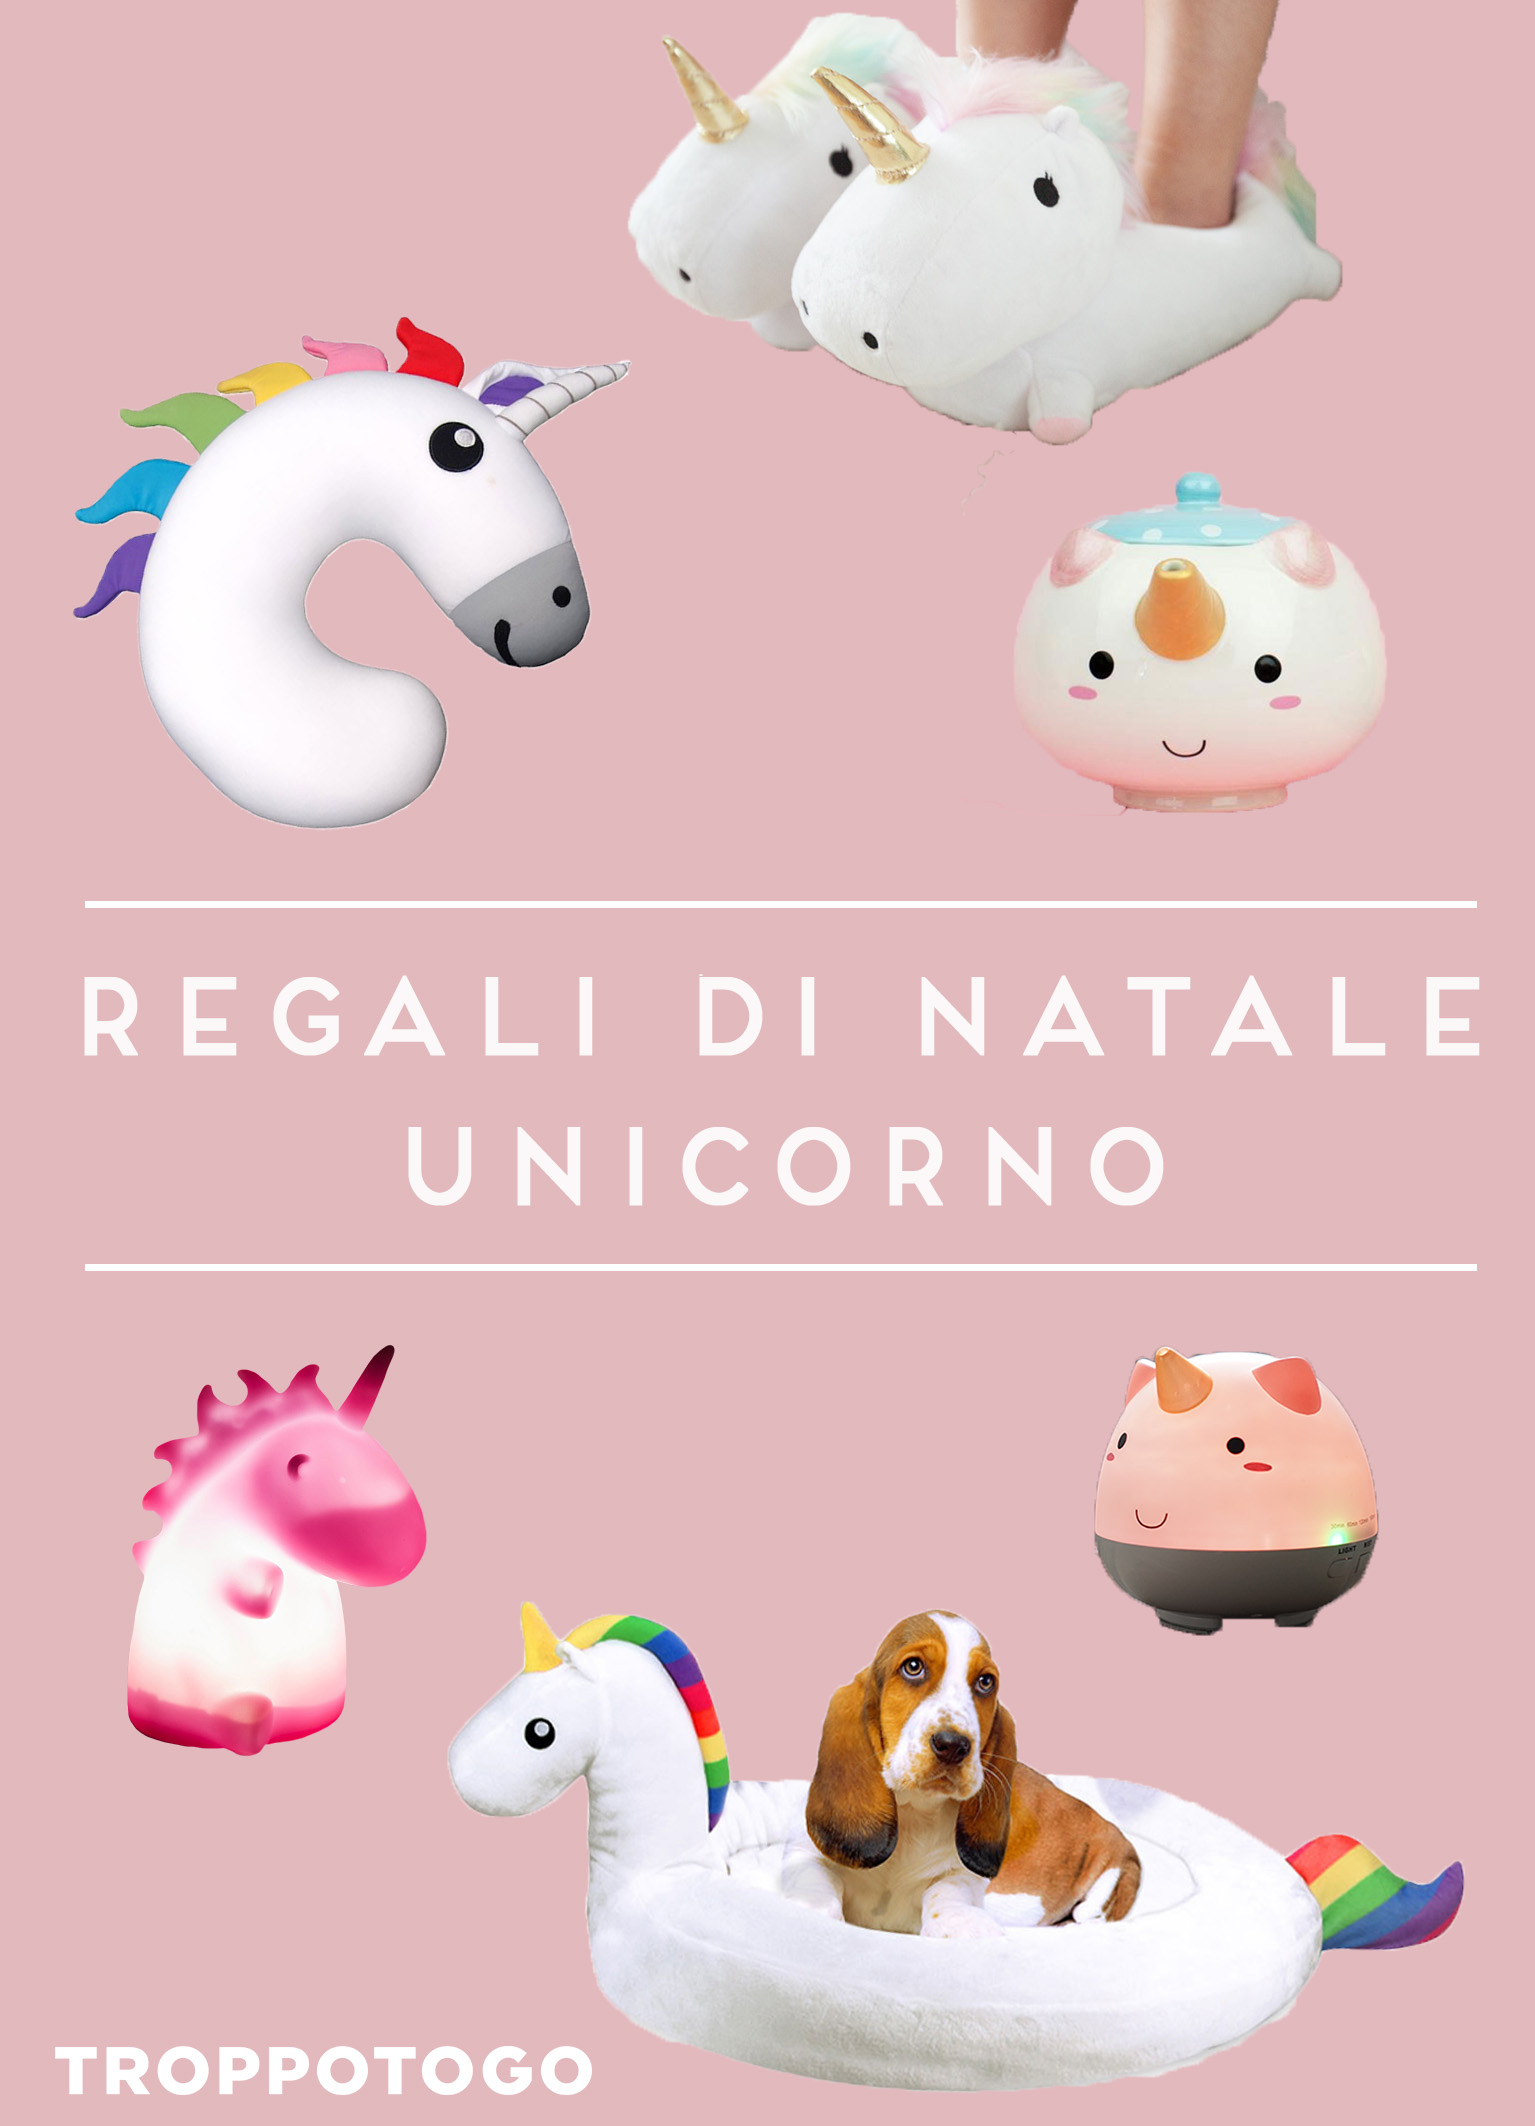 regali unicorno